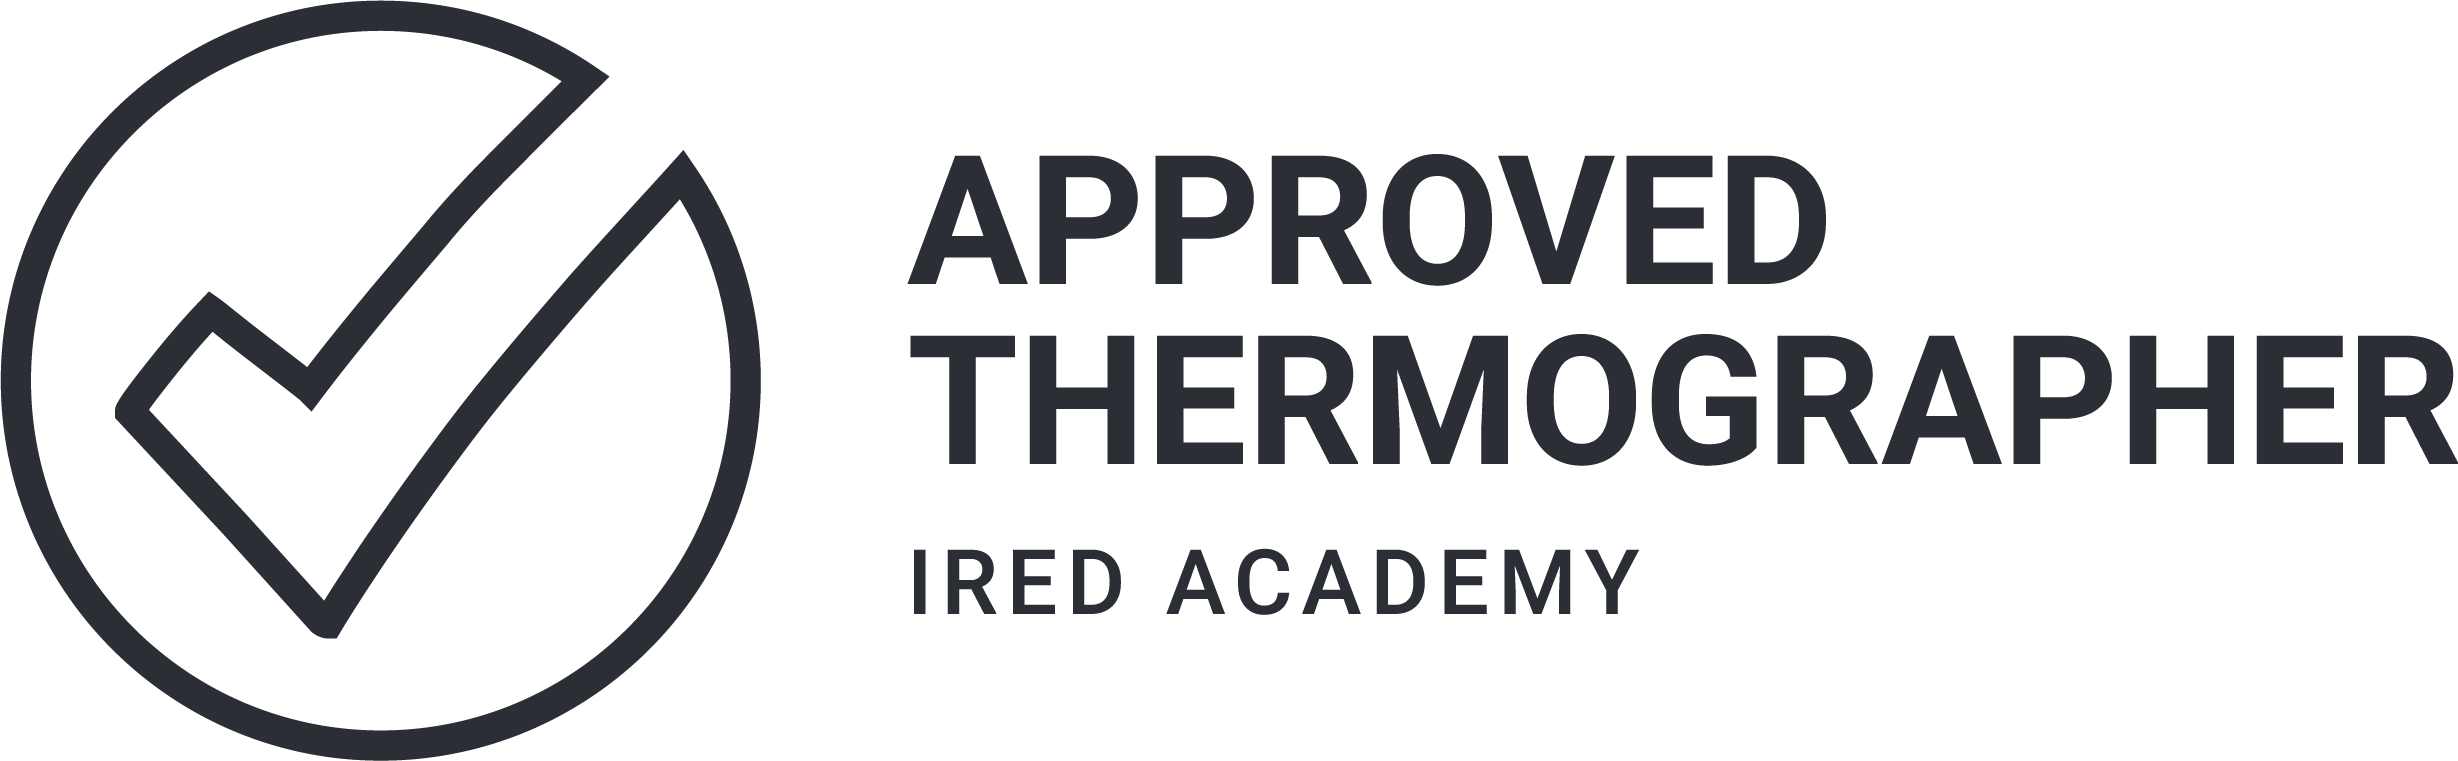 Approved Thermographer Logo